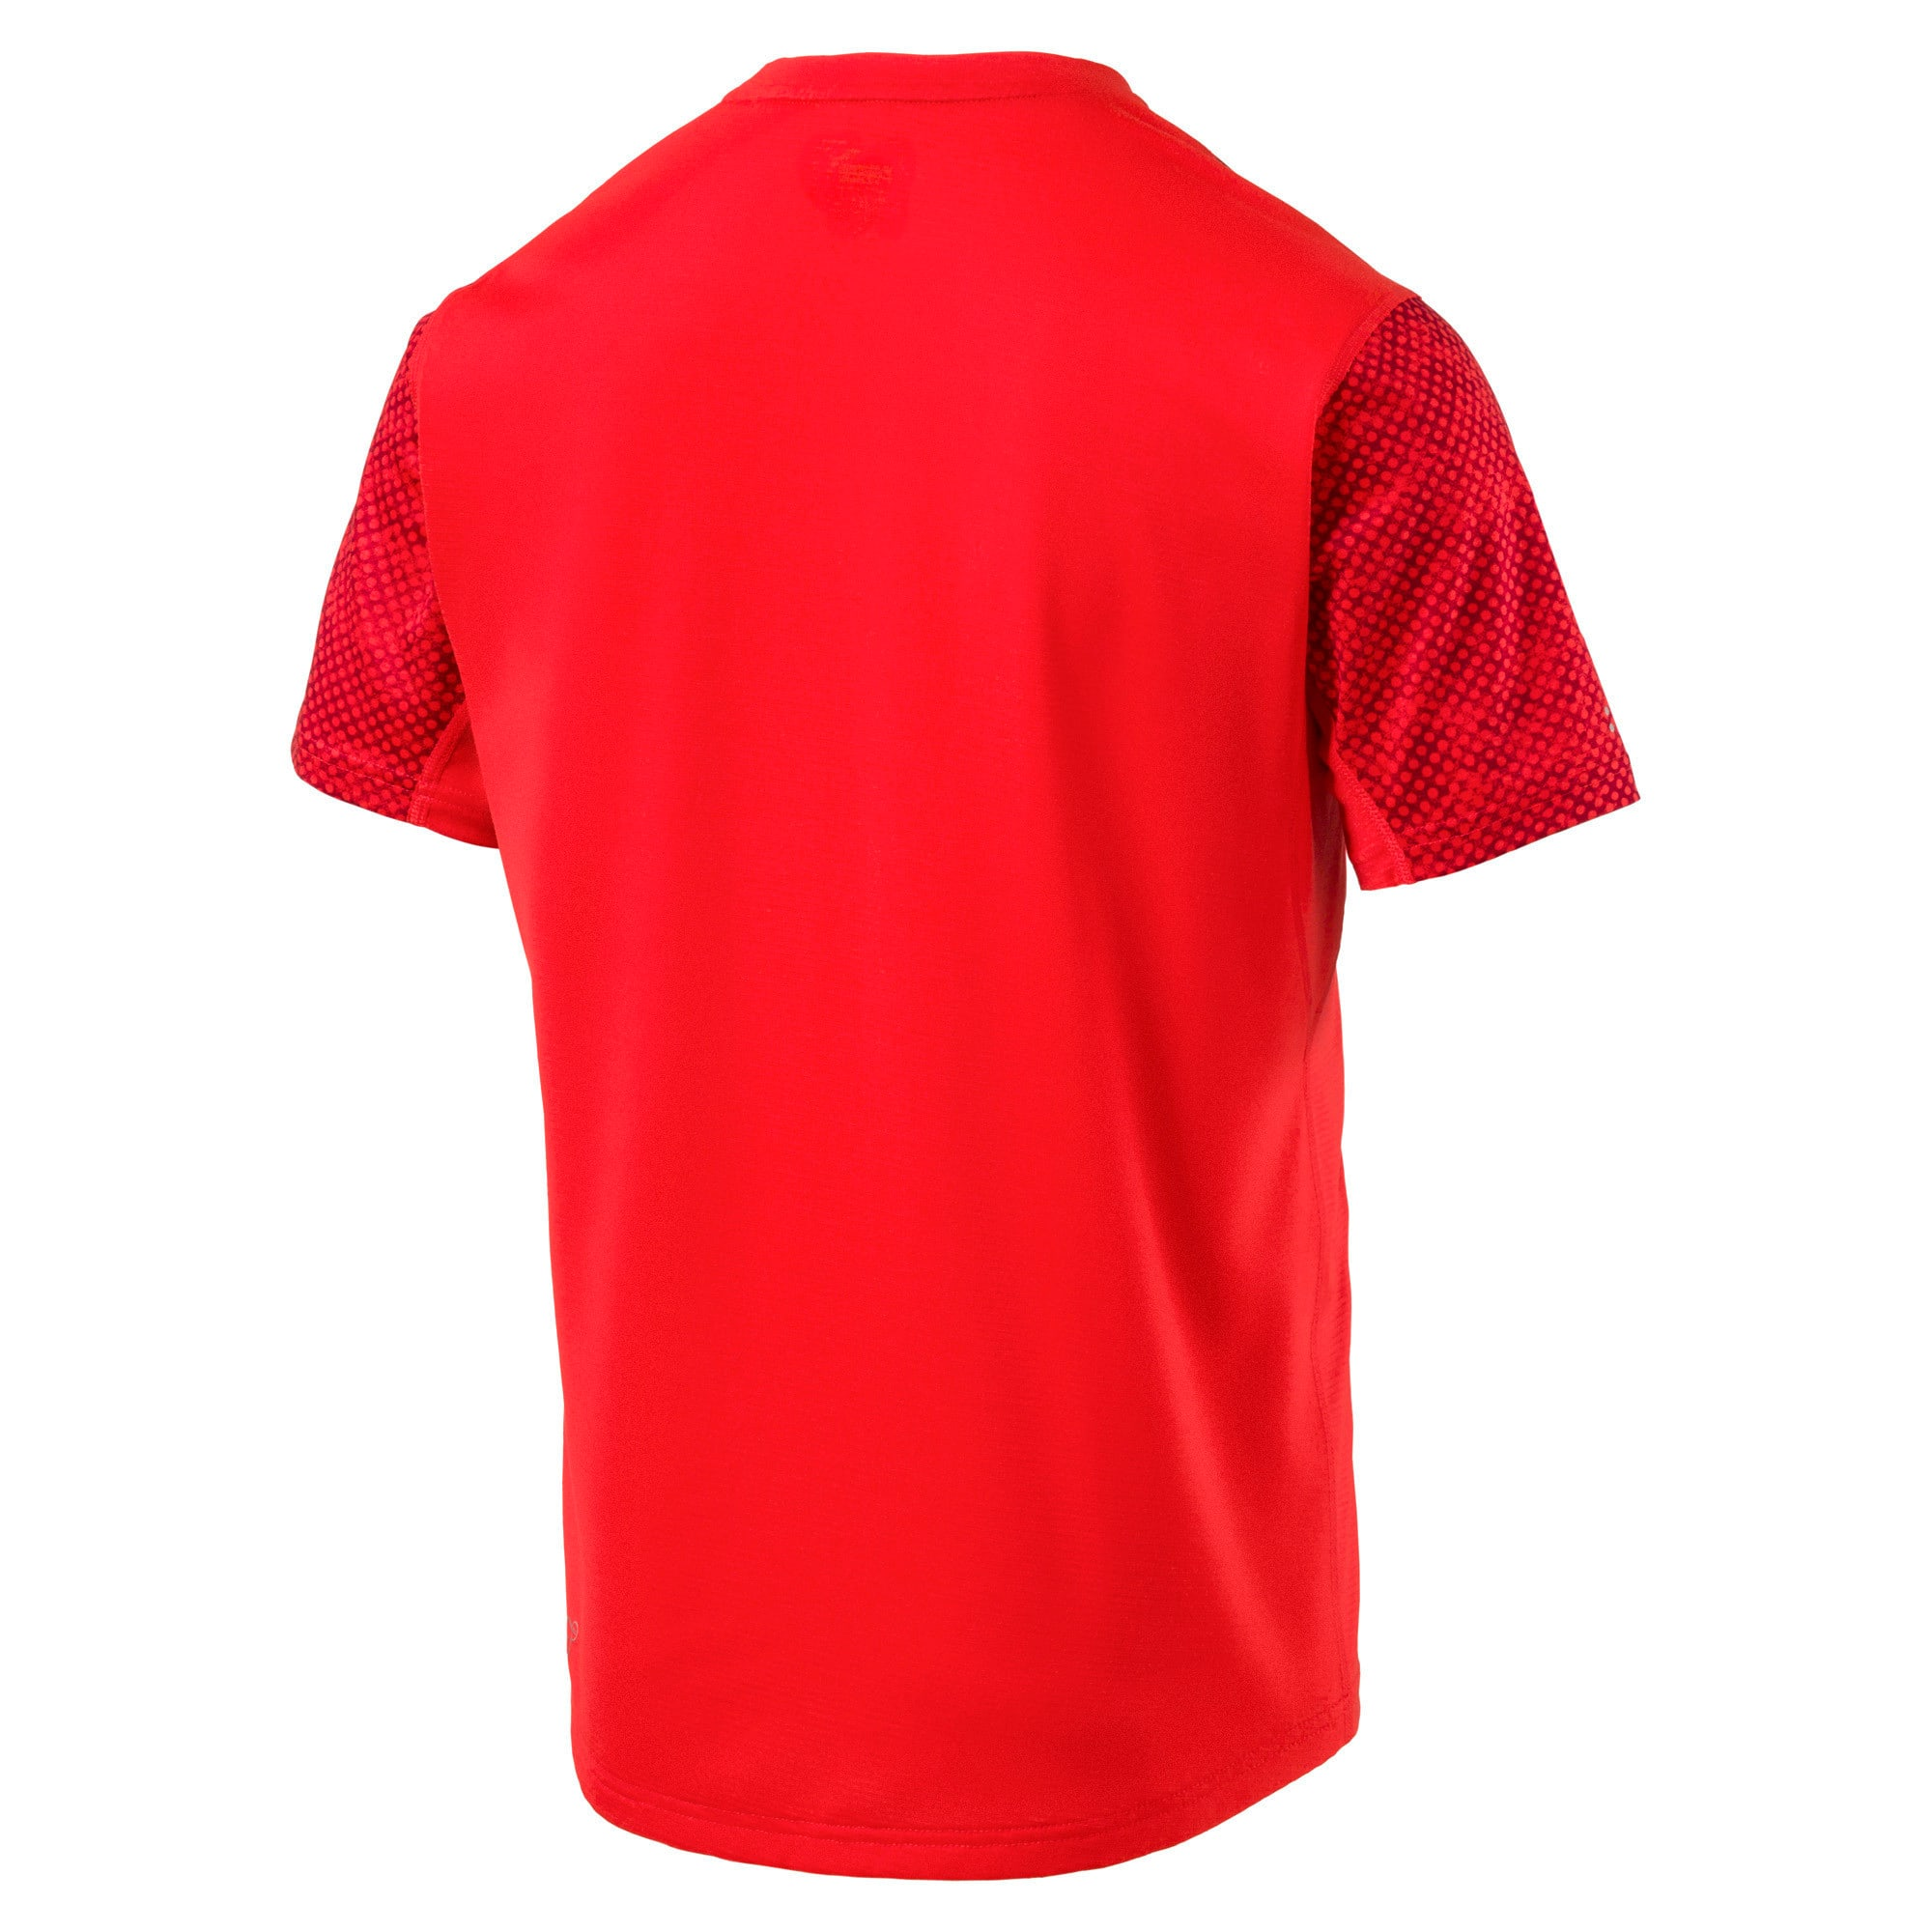 Thumbnail 4 of Graphic Short Sleeve Men's Running T-Shirt, Flame Scarlet, medium-IND